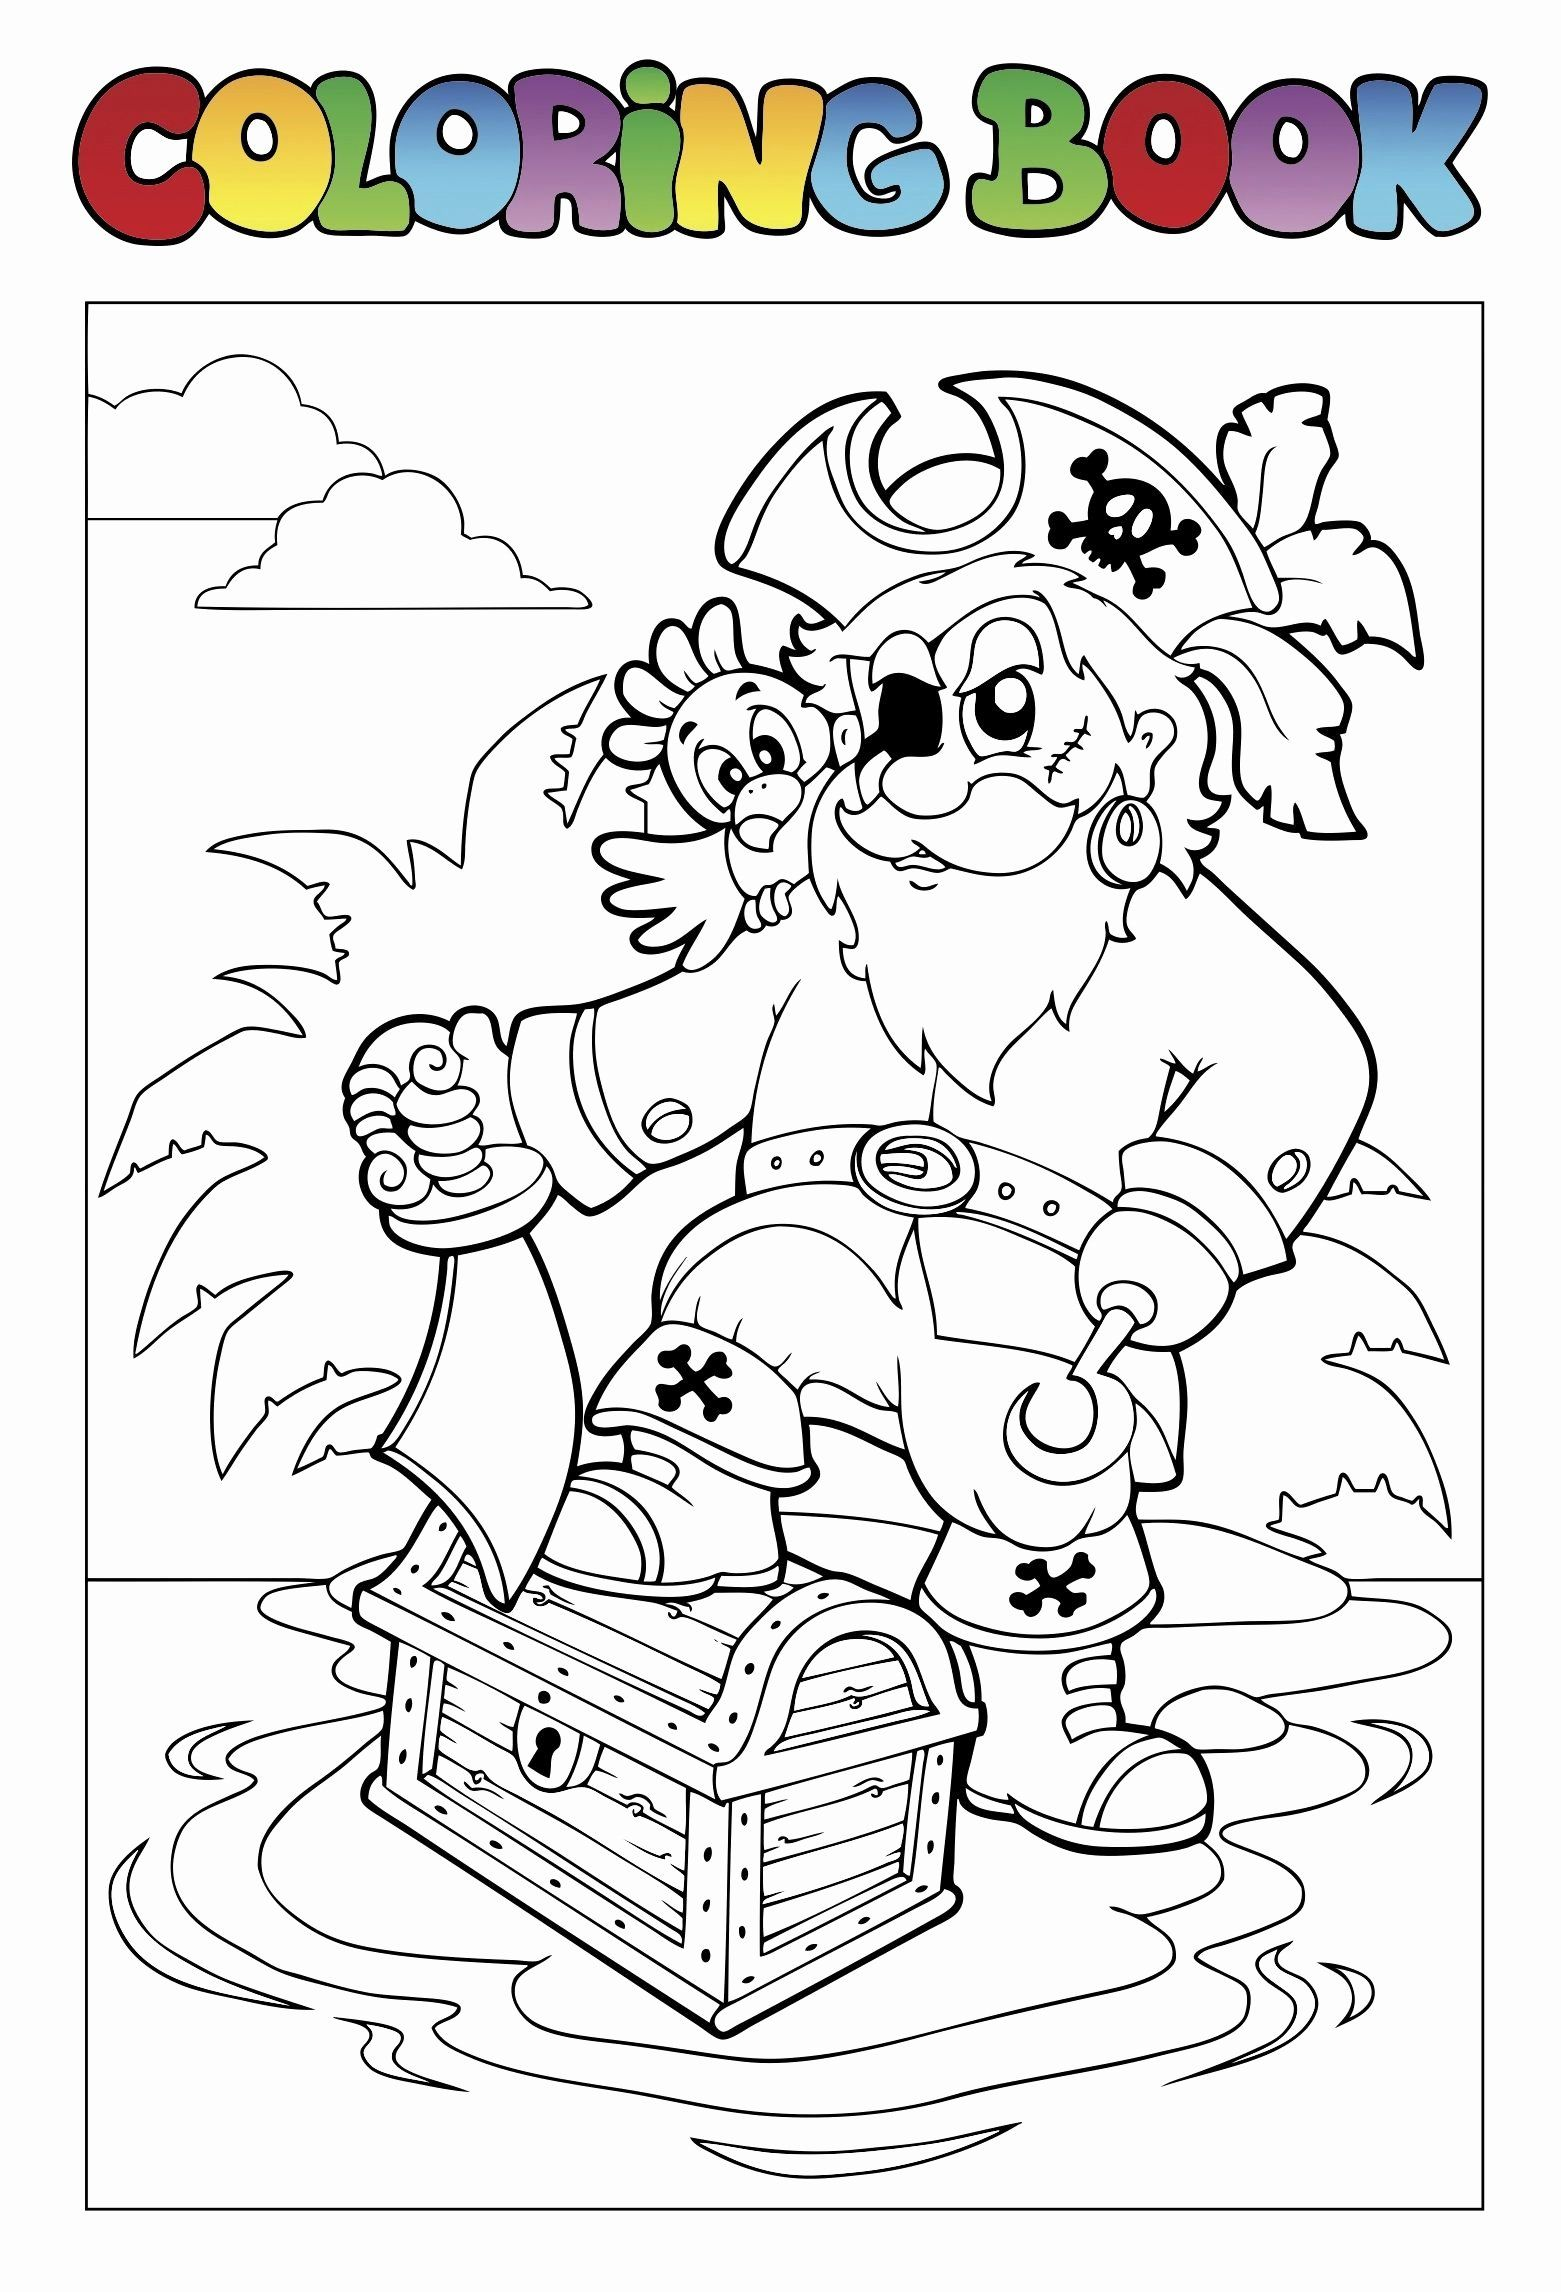 Pin By Wendie France On Coloring Pages Pirate Coloring Pages Mermaid Coloring Pages Coloring Pages